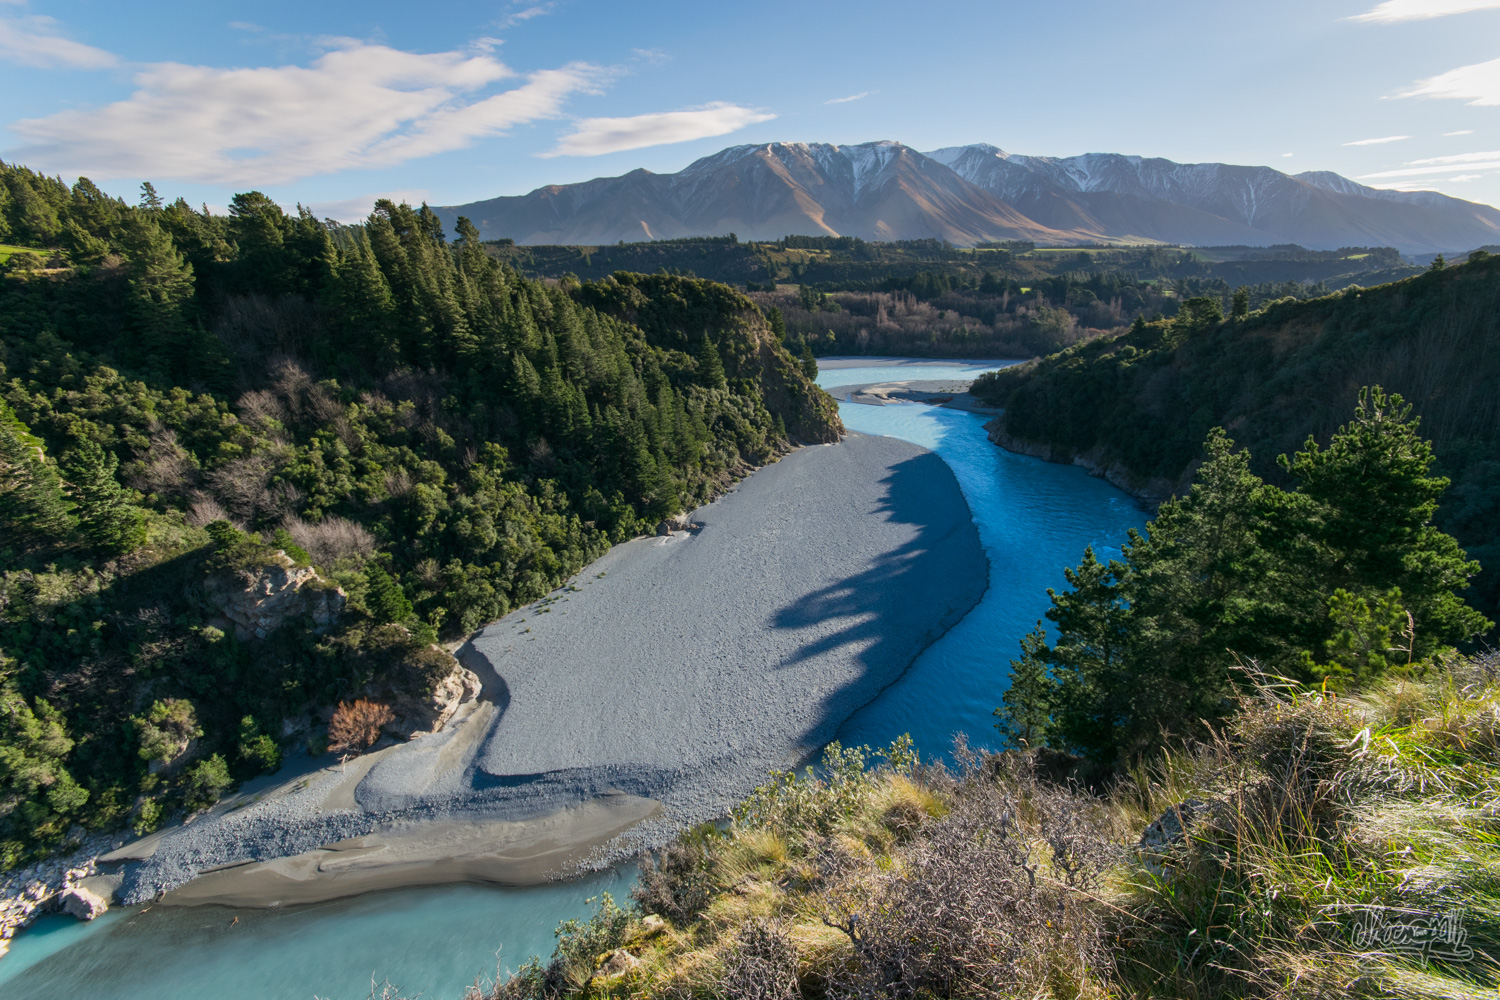 After a 2 hours long hike, the view over the Rakaia Gorge and the mountains seduced us.